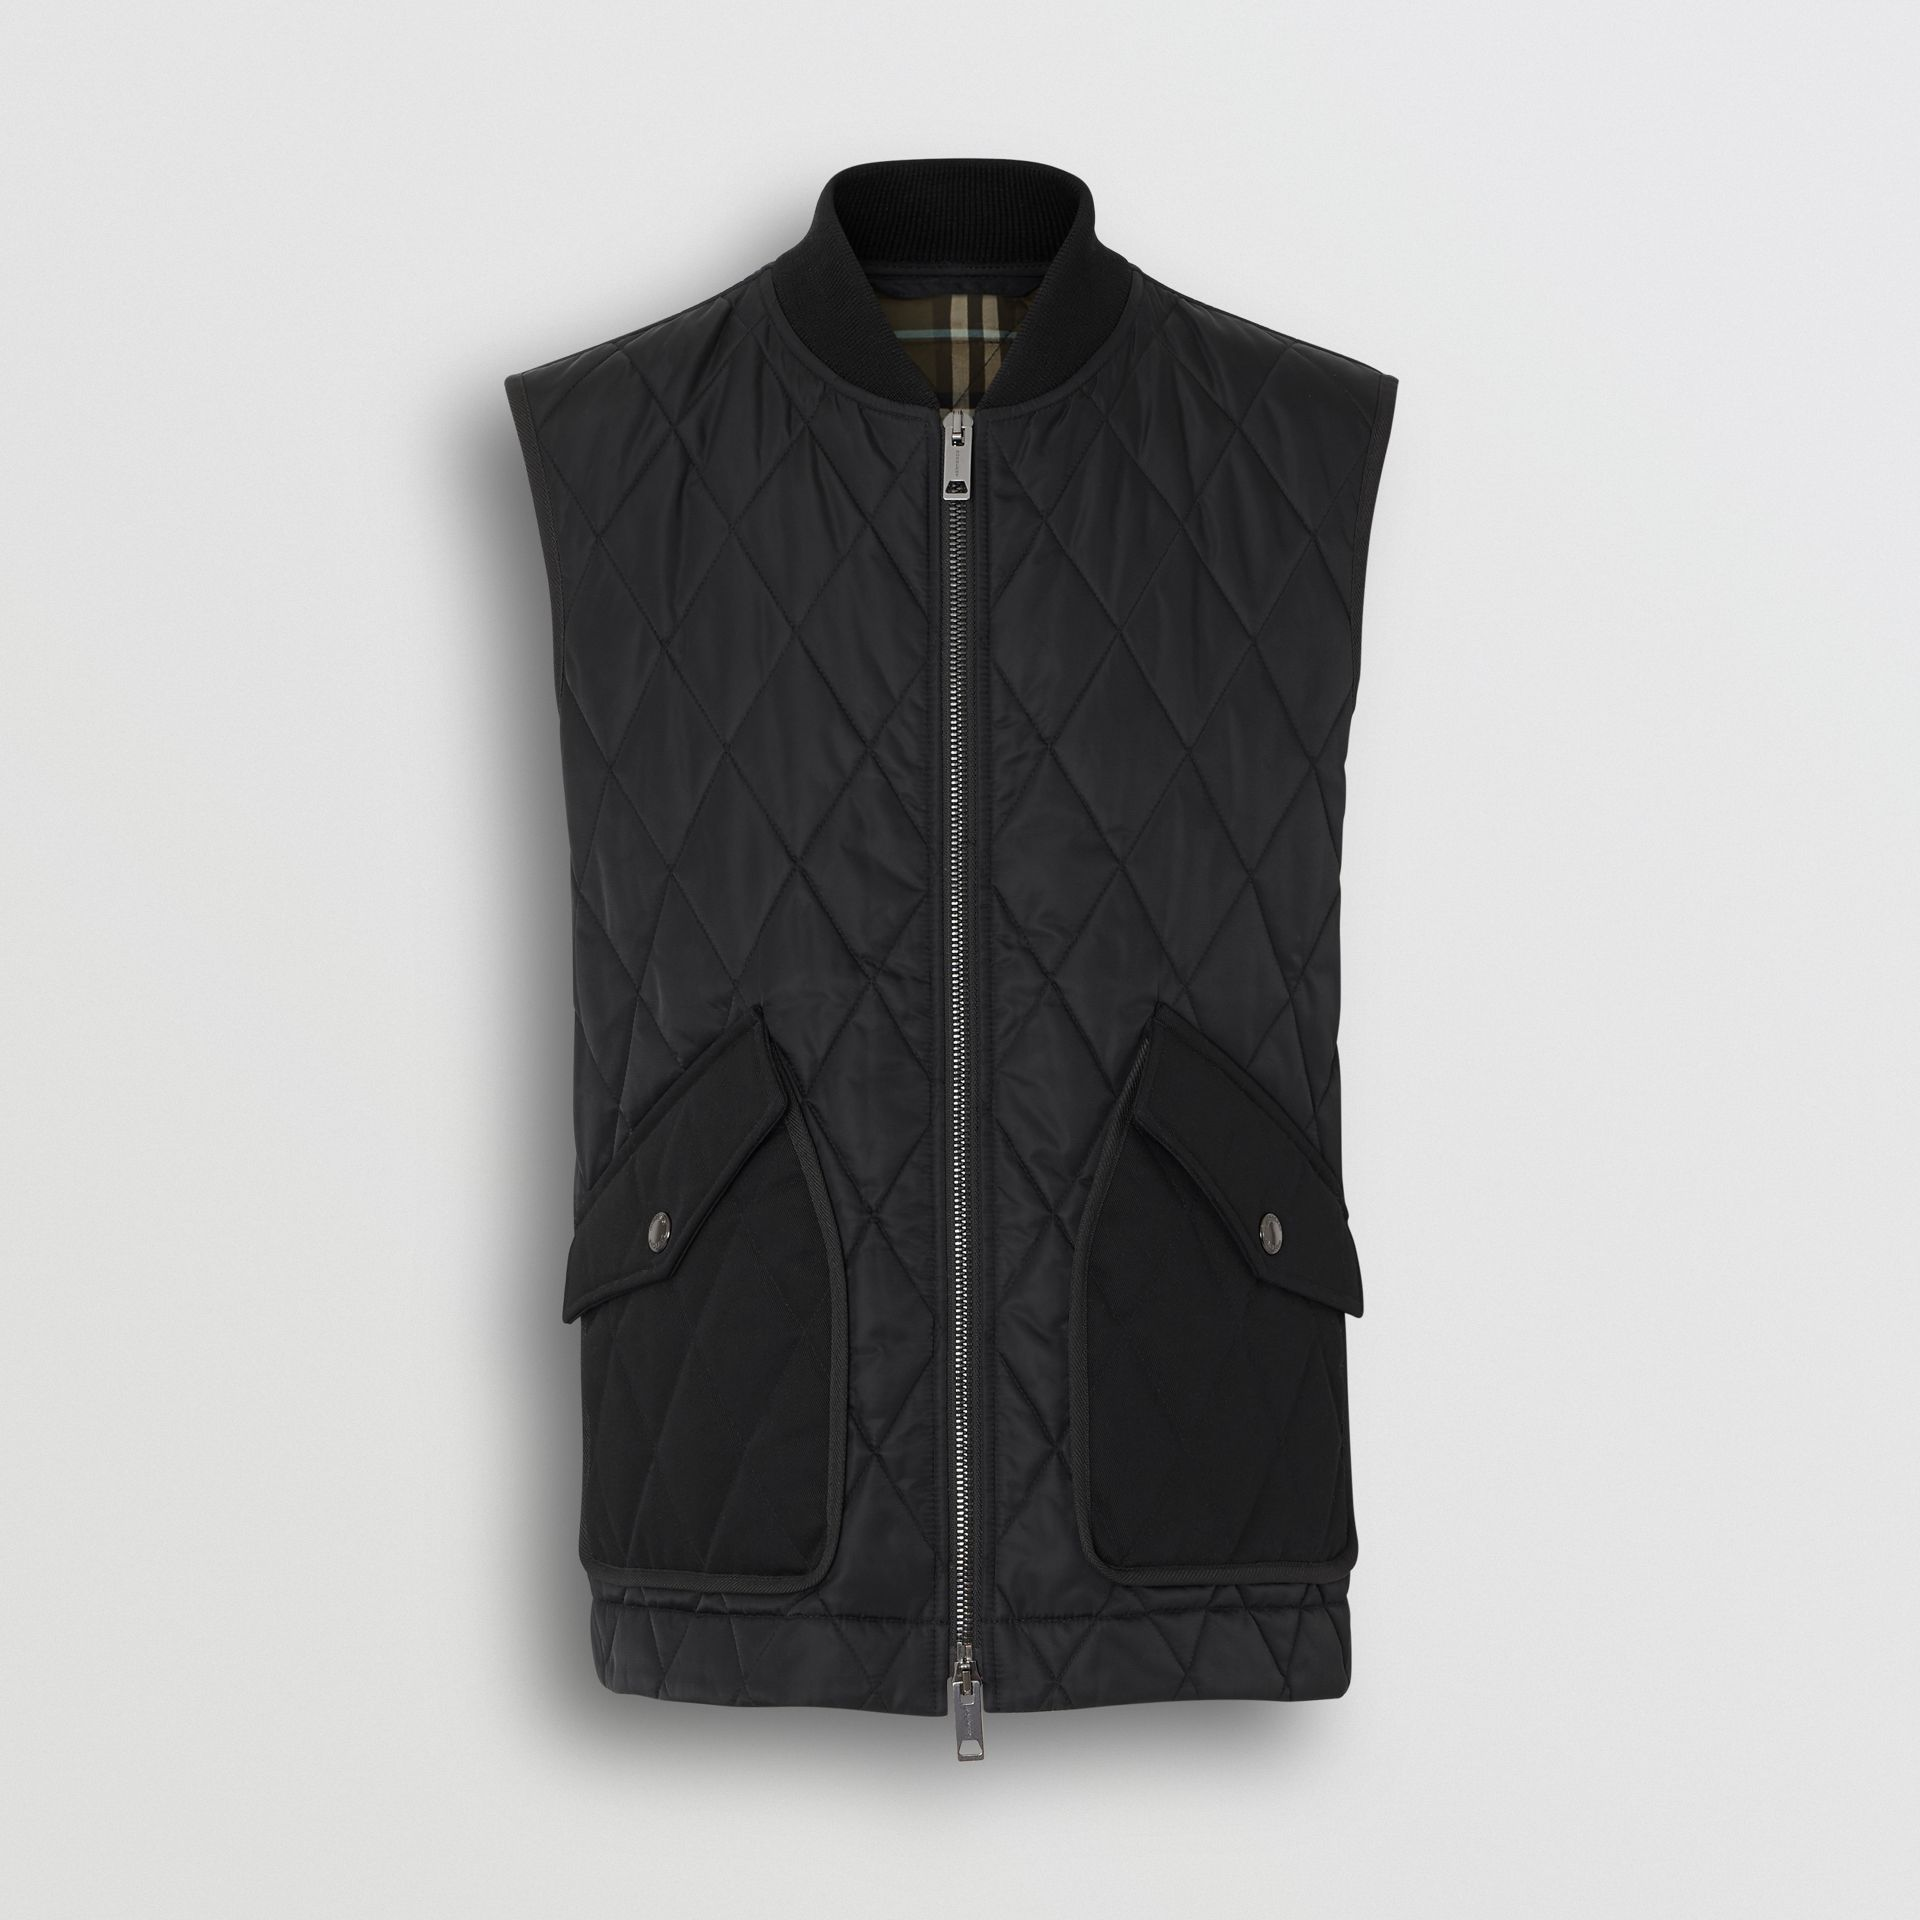 Monogram Motif Diamond Quilted Gilet in Black - Men | Burberry - gallery image 3